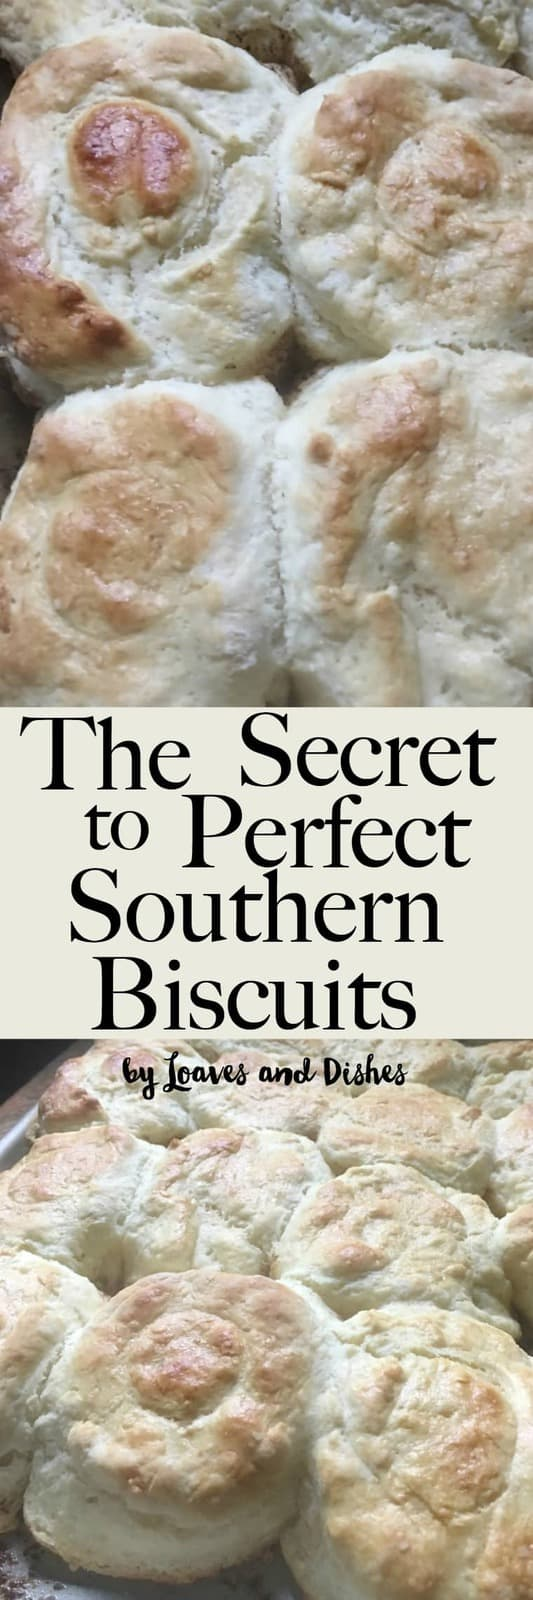 Homemade Easy Southern Biscuits made with buttermilk.  Like the Pioneer Woman or Paula Deen might make. This is the best recipe and uses self rising flour so it is all in there.  All of the steps revealed with photos and explanation.